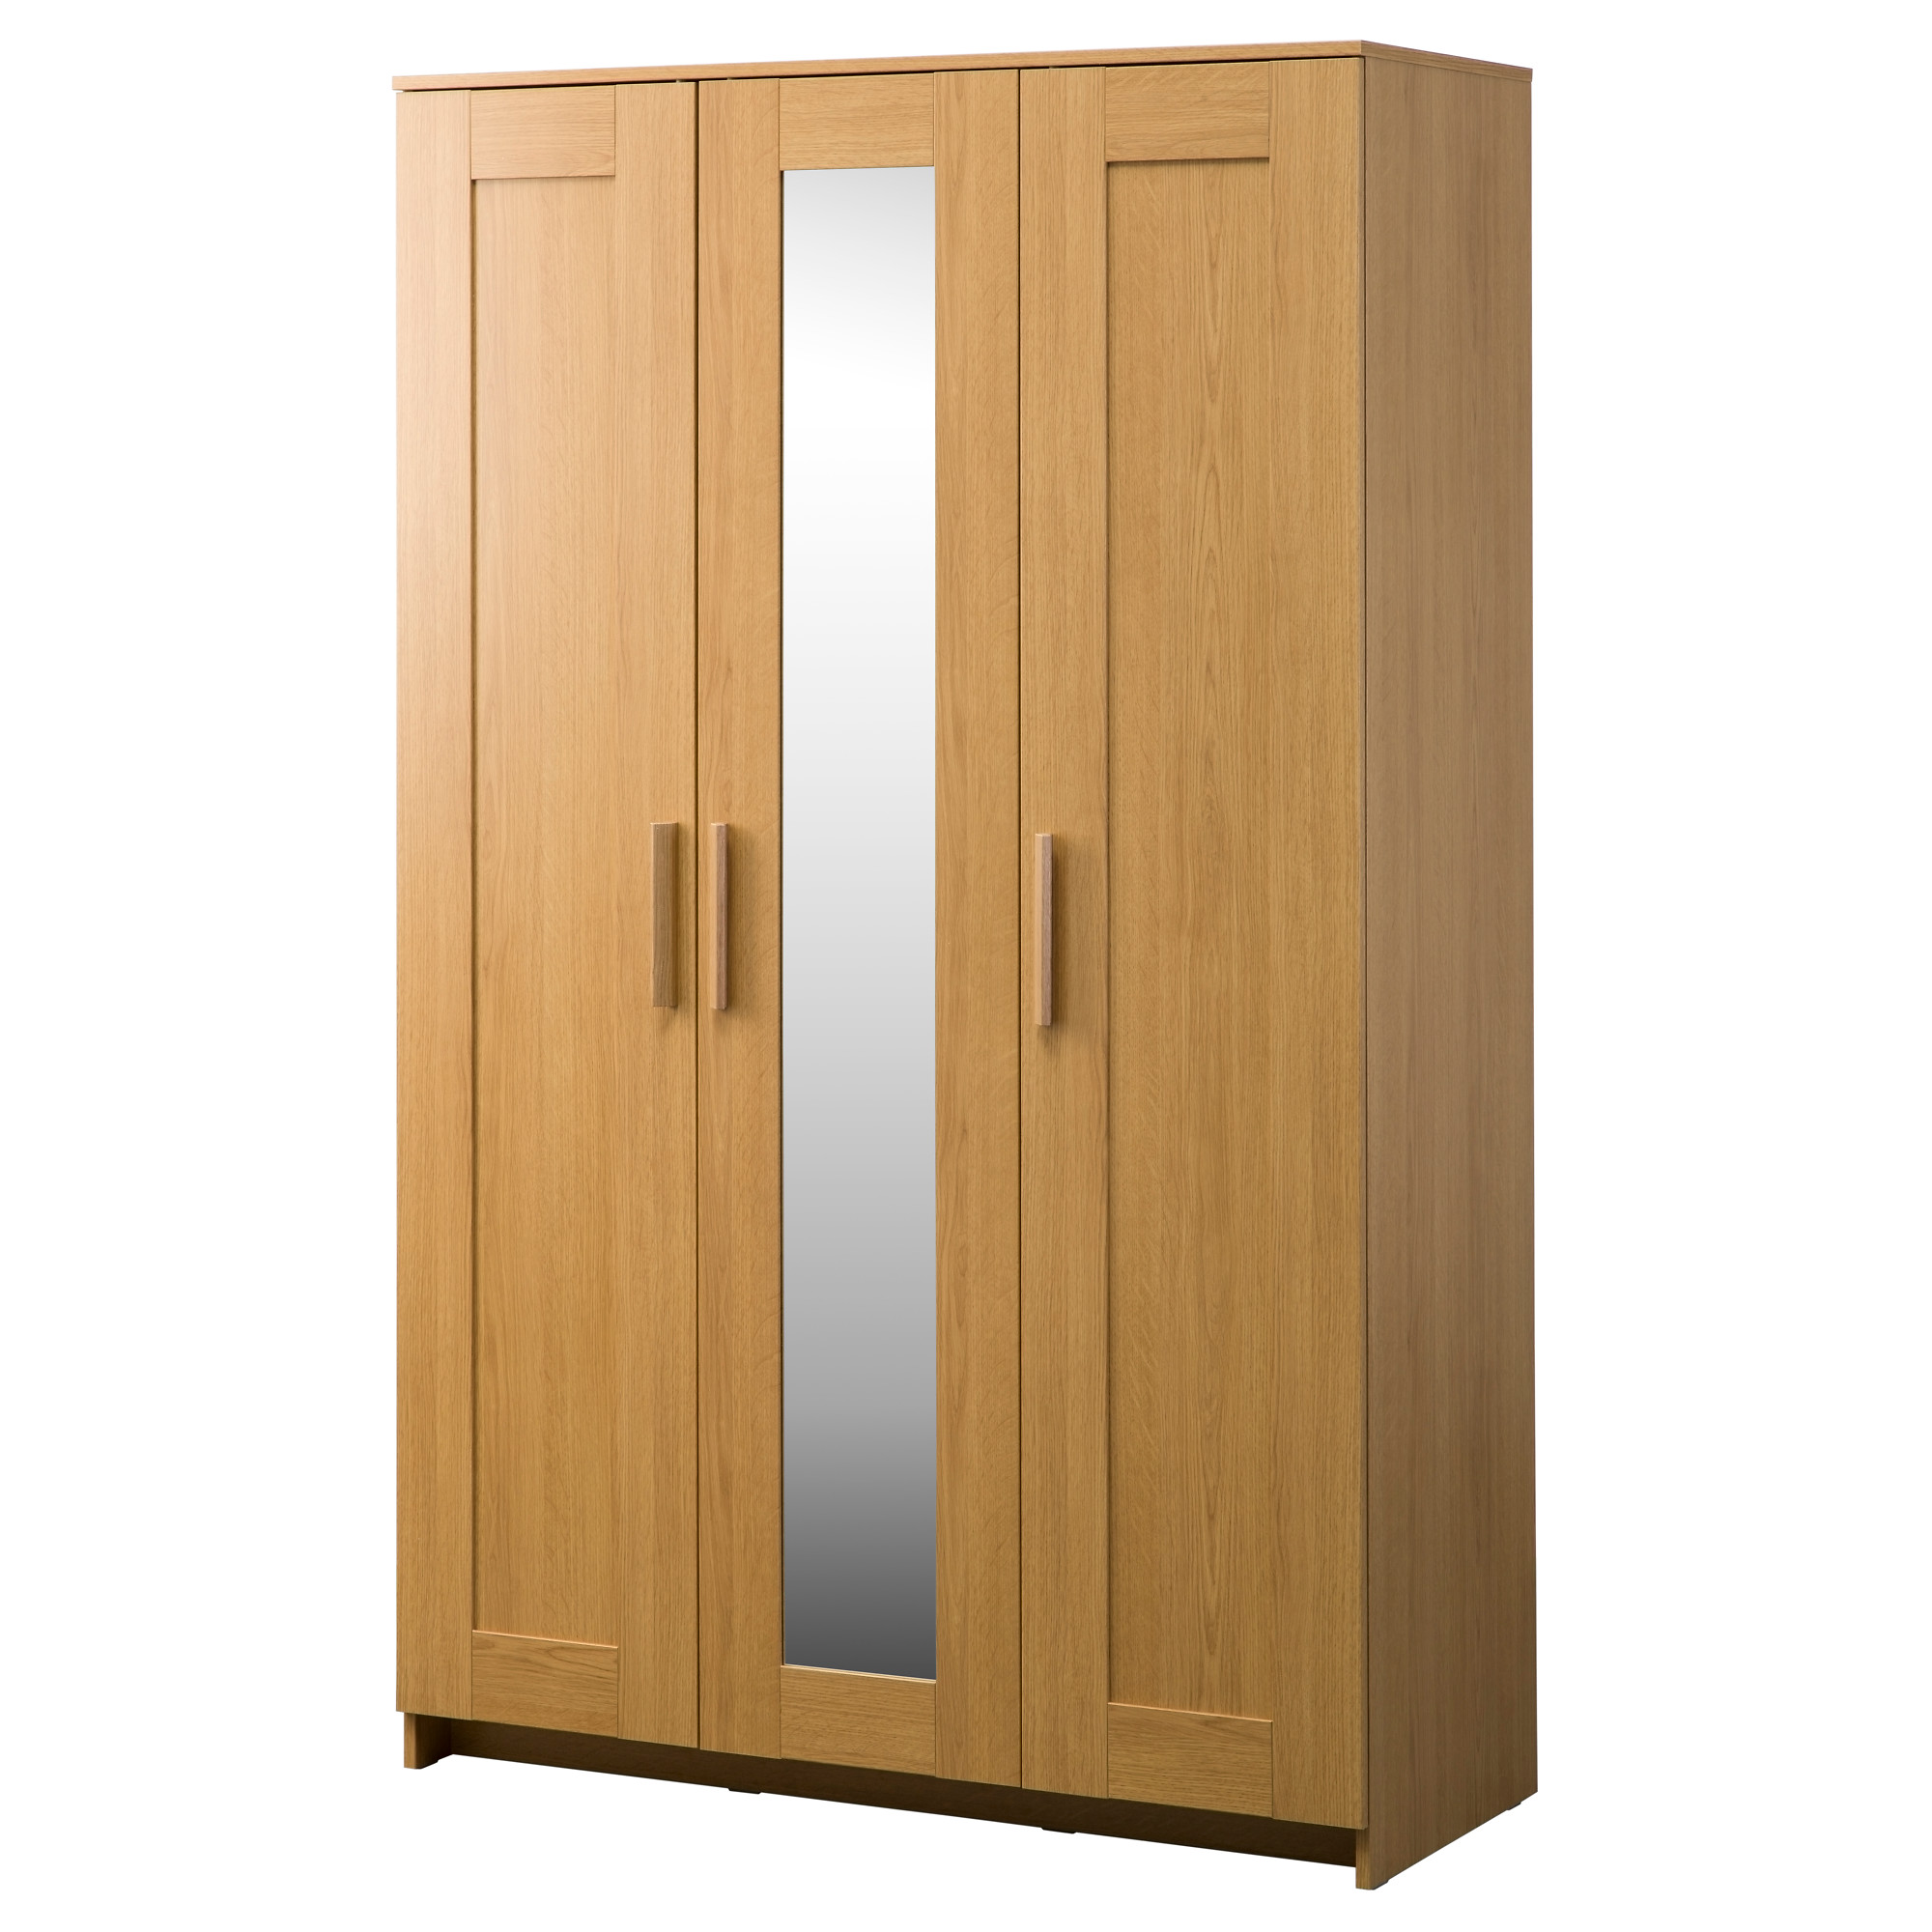 Coat Armoire Wardrobe | Armoires for Hanging Clothes | Free Standing Closet Wardrobe